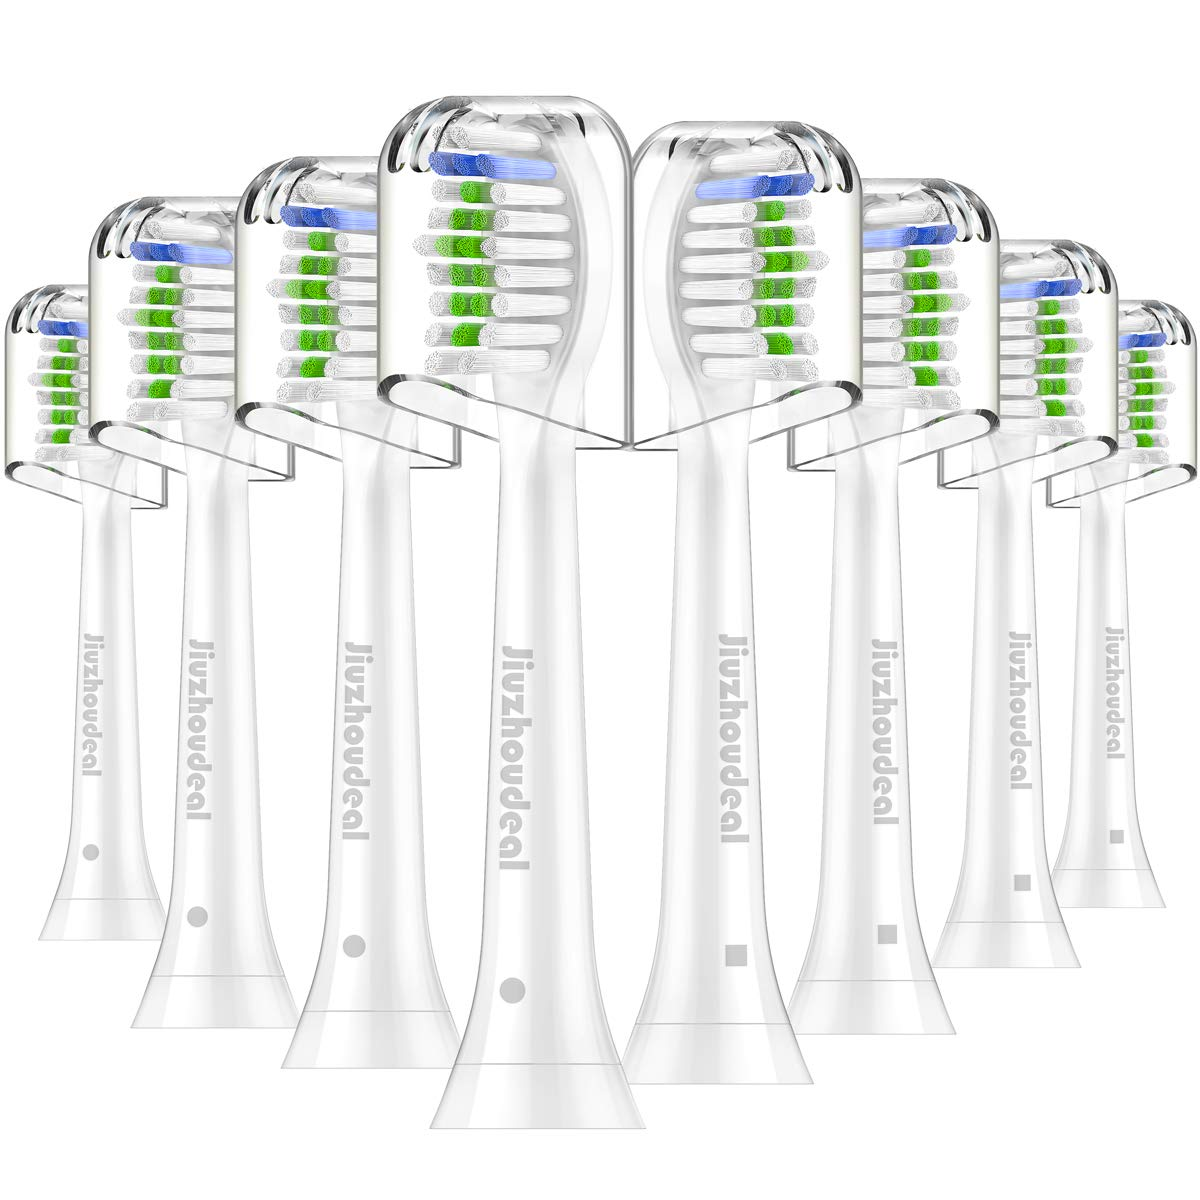 Replacement Brush Heads Compatible with Phillips Sonicare Electric Toothbrush DiamondClean, HealthyWhite, FlexCare, EasyClean, Essence+, PowerUp, 8 Pack by Jiuzhoudeal by Jiuzhoudeal